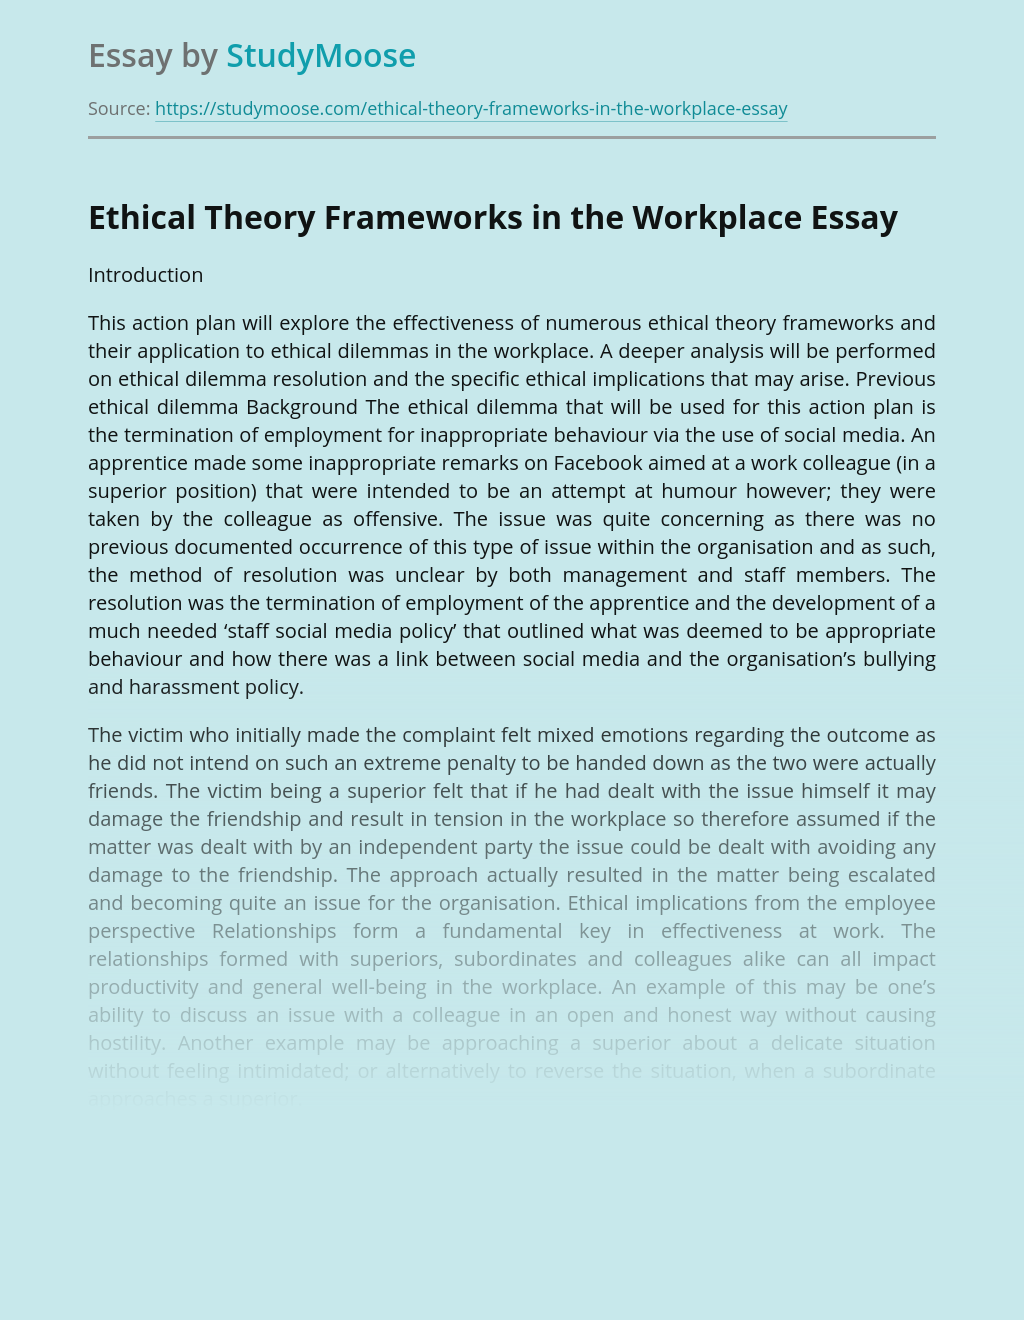 Ethical Theory Frameworks in the Workplace